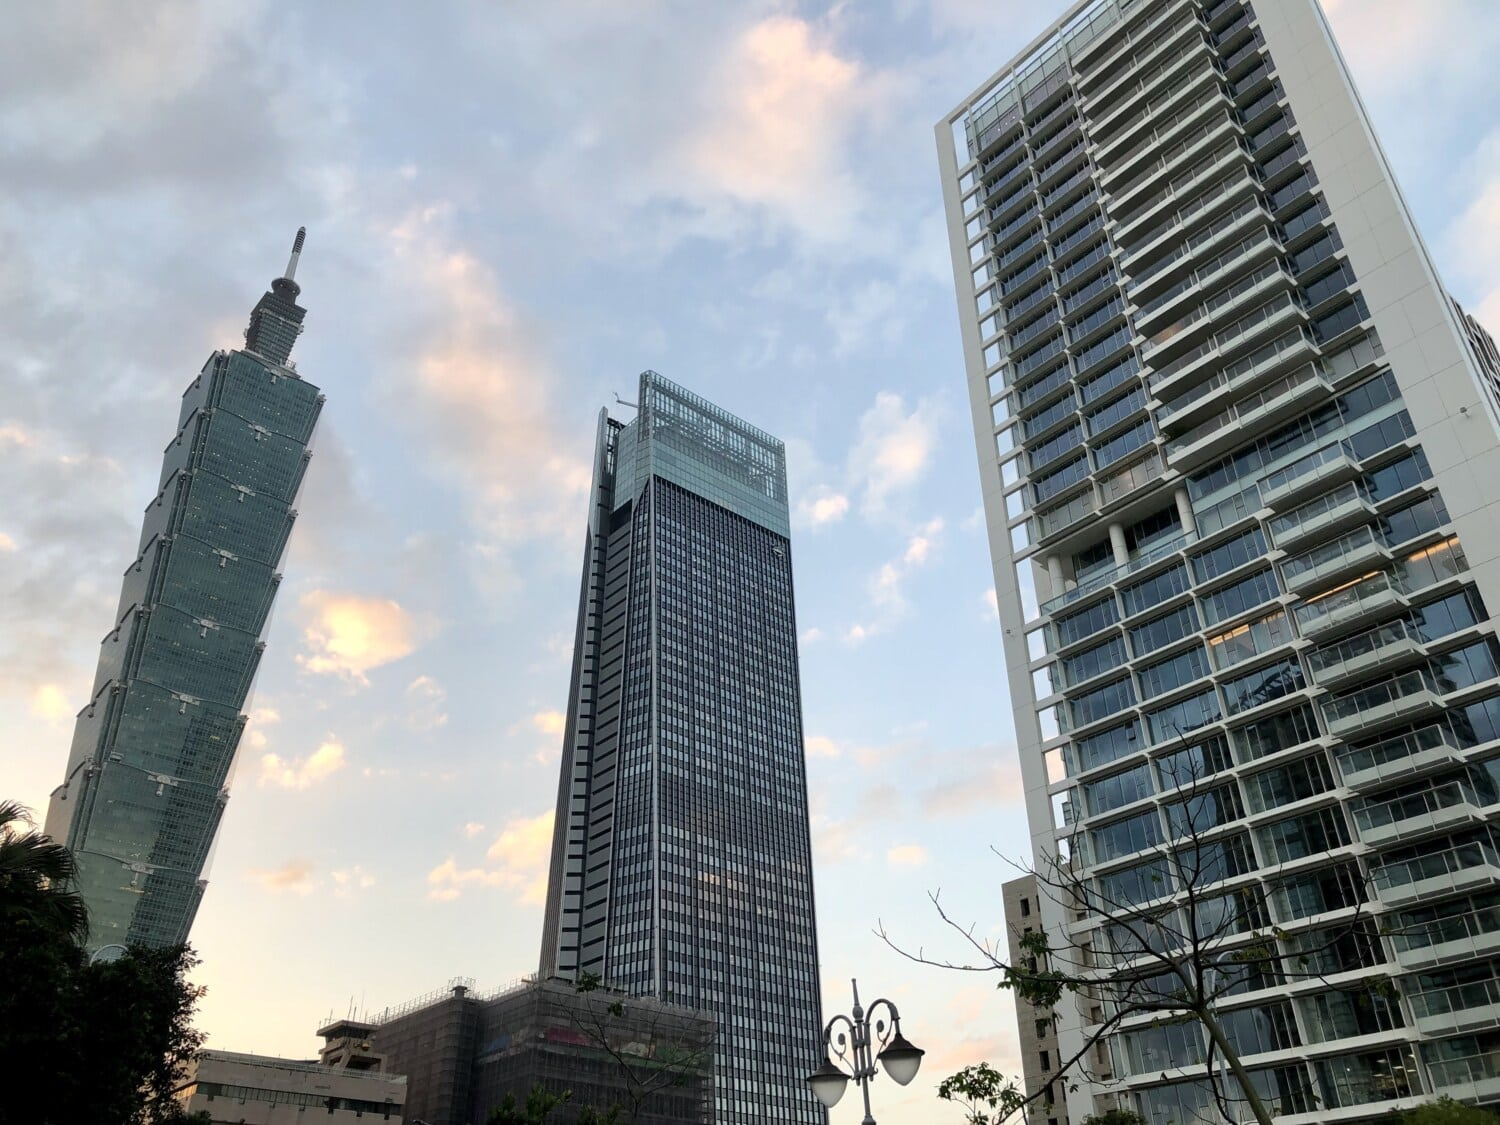 tower, Asia, skyscraper, buildings, cityscape, downtown, building, tall, city, architecture